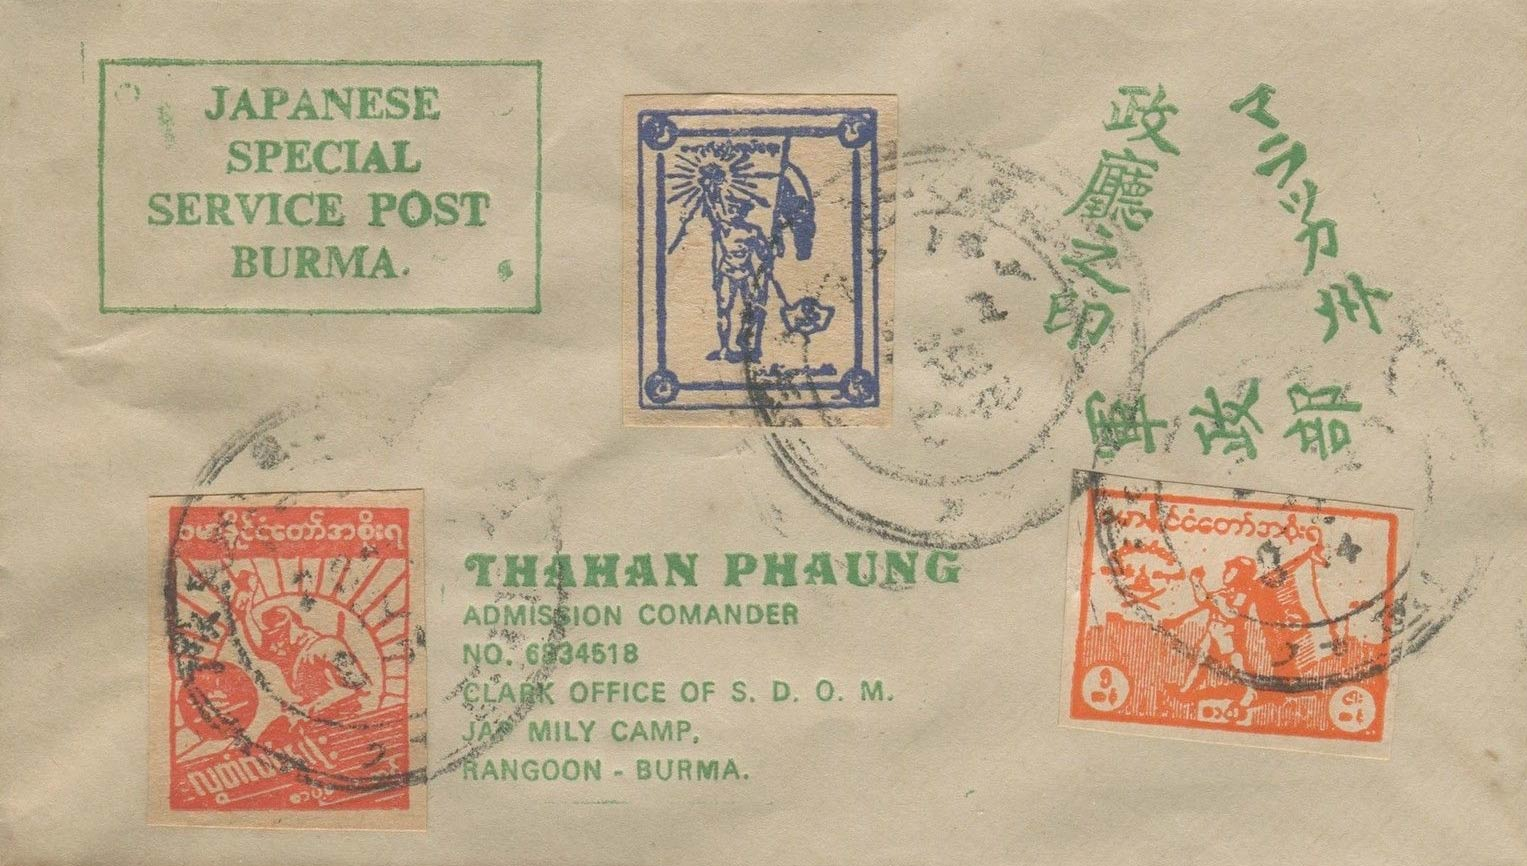 Burma_Japanese-Special-Service-Post_Cover_Forgery11